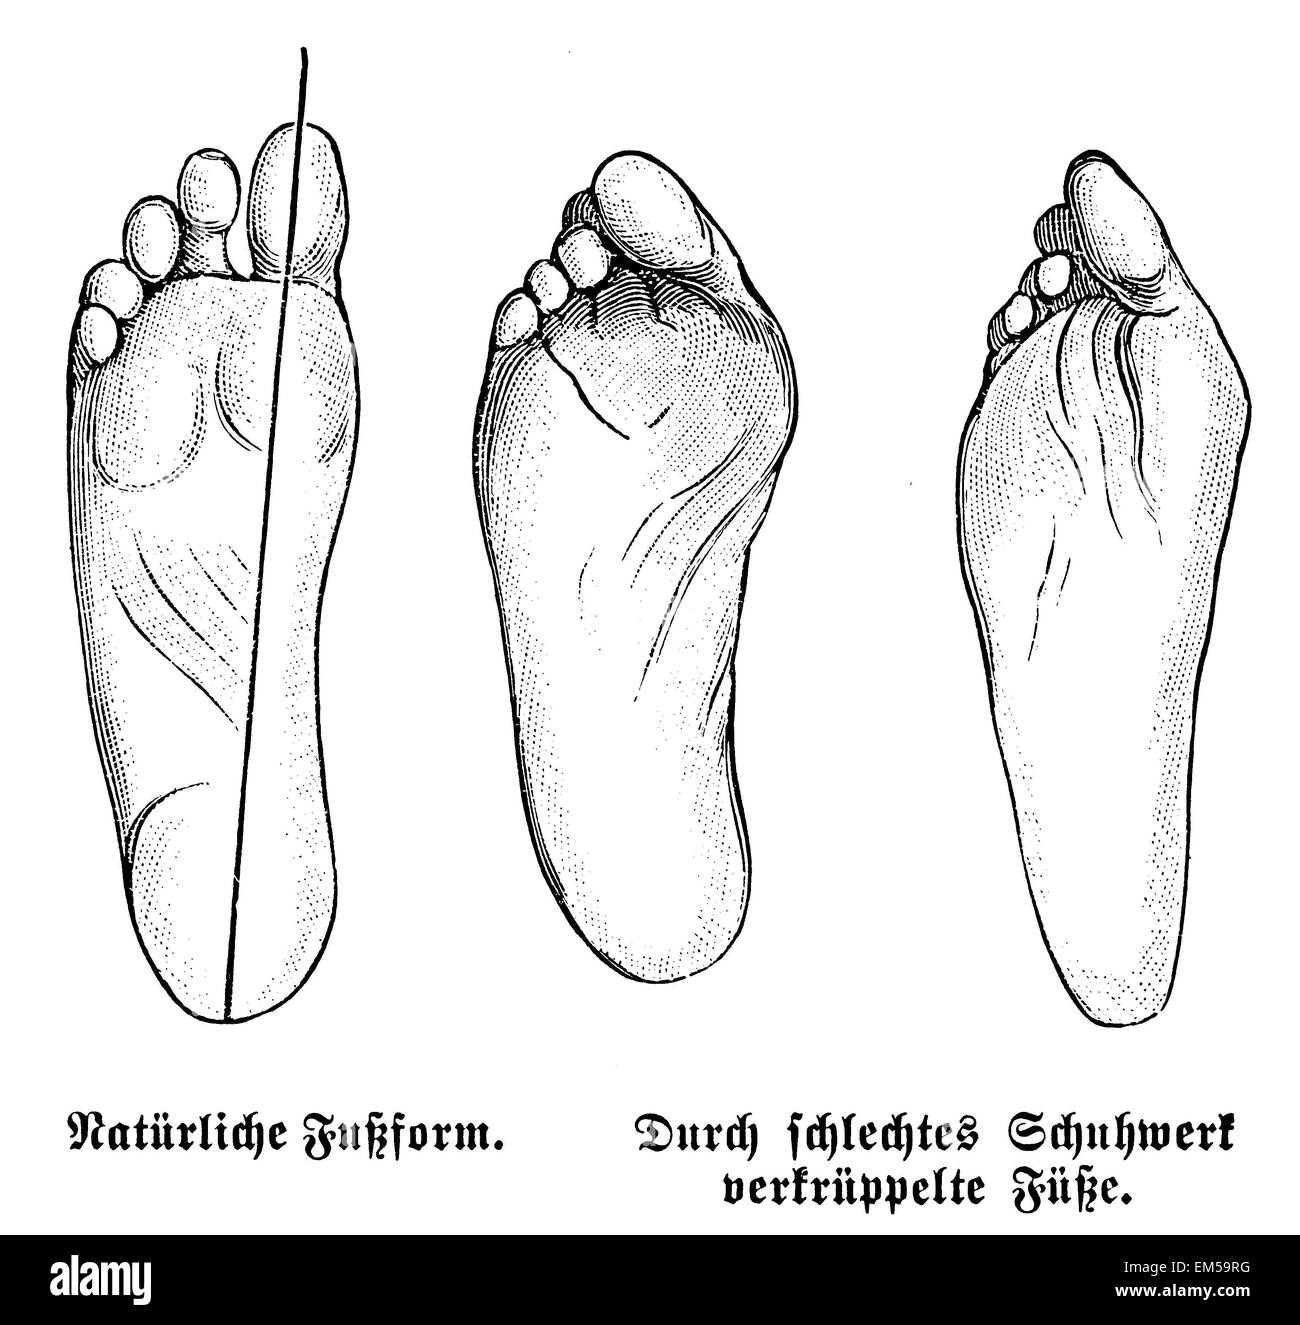 Natural foot shape (left) and crippled feet by wrong shoes (center and right) - Stock Image